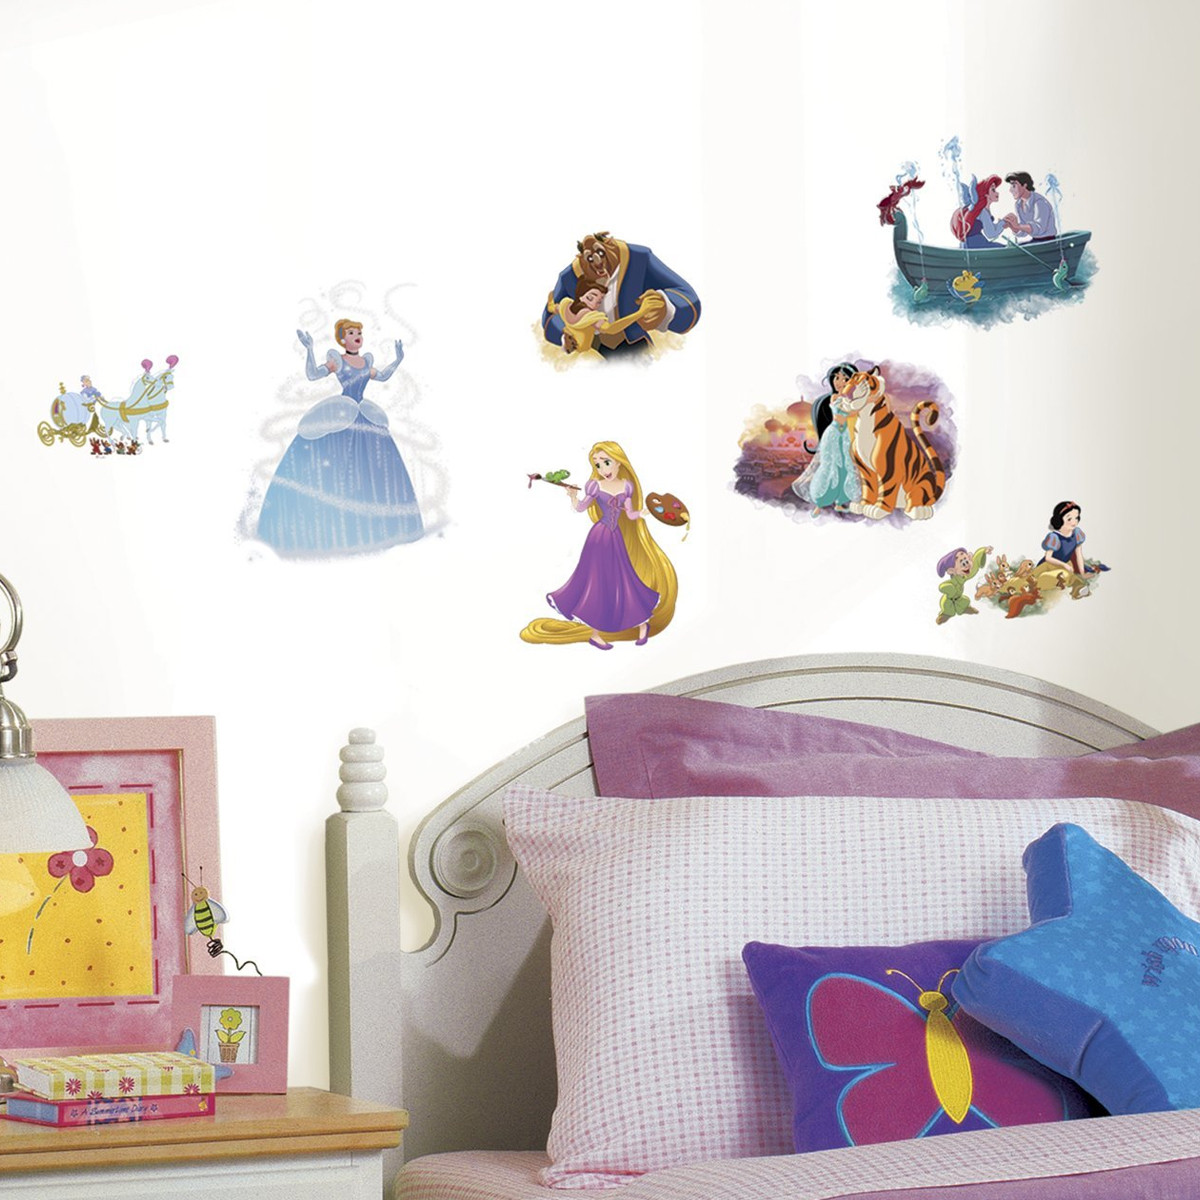 22 Stickers Toutes les Princesses Disney Repositionnables